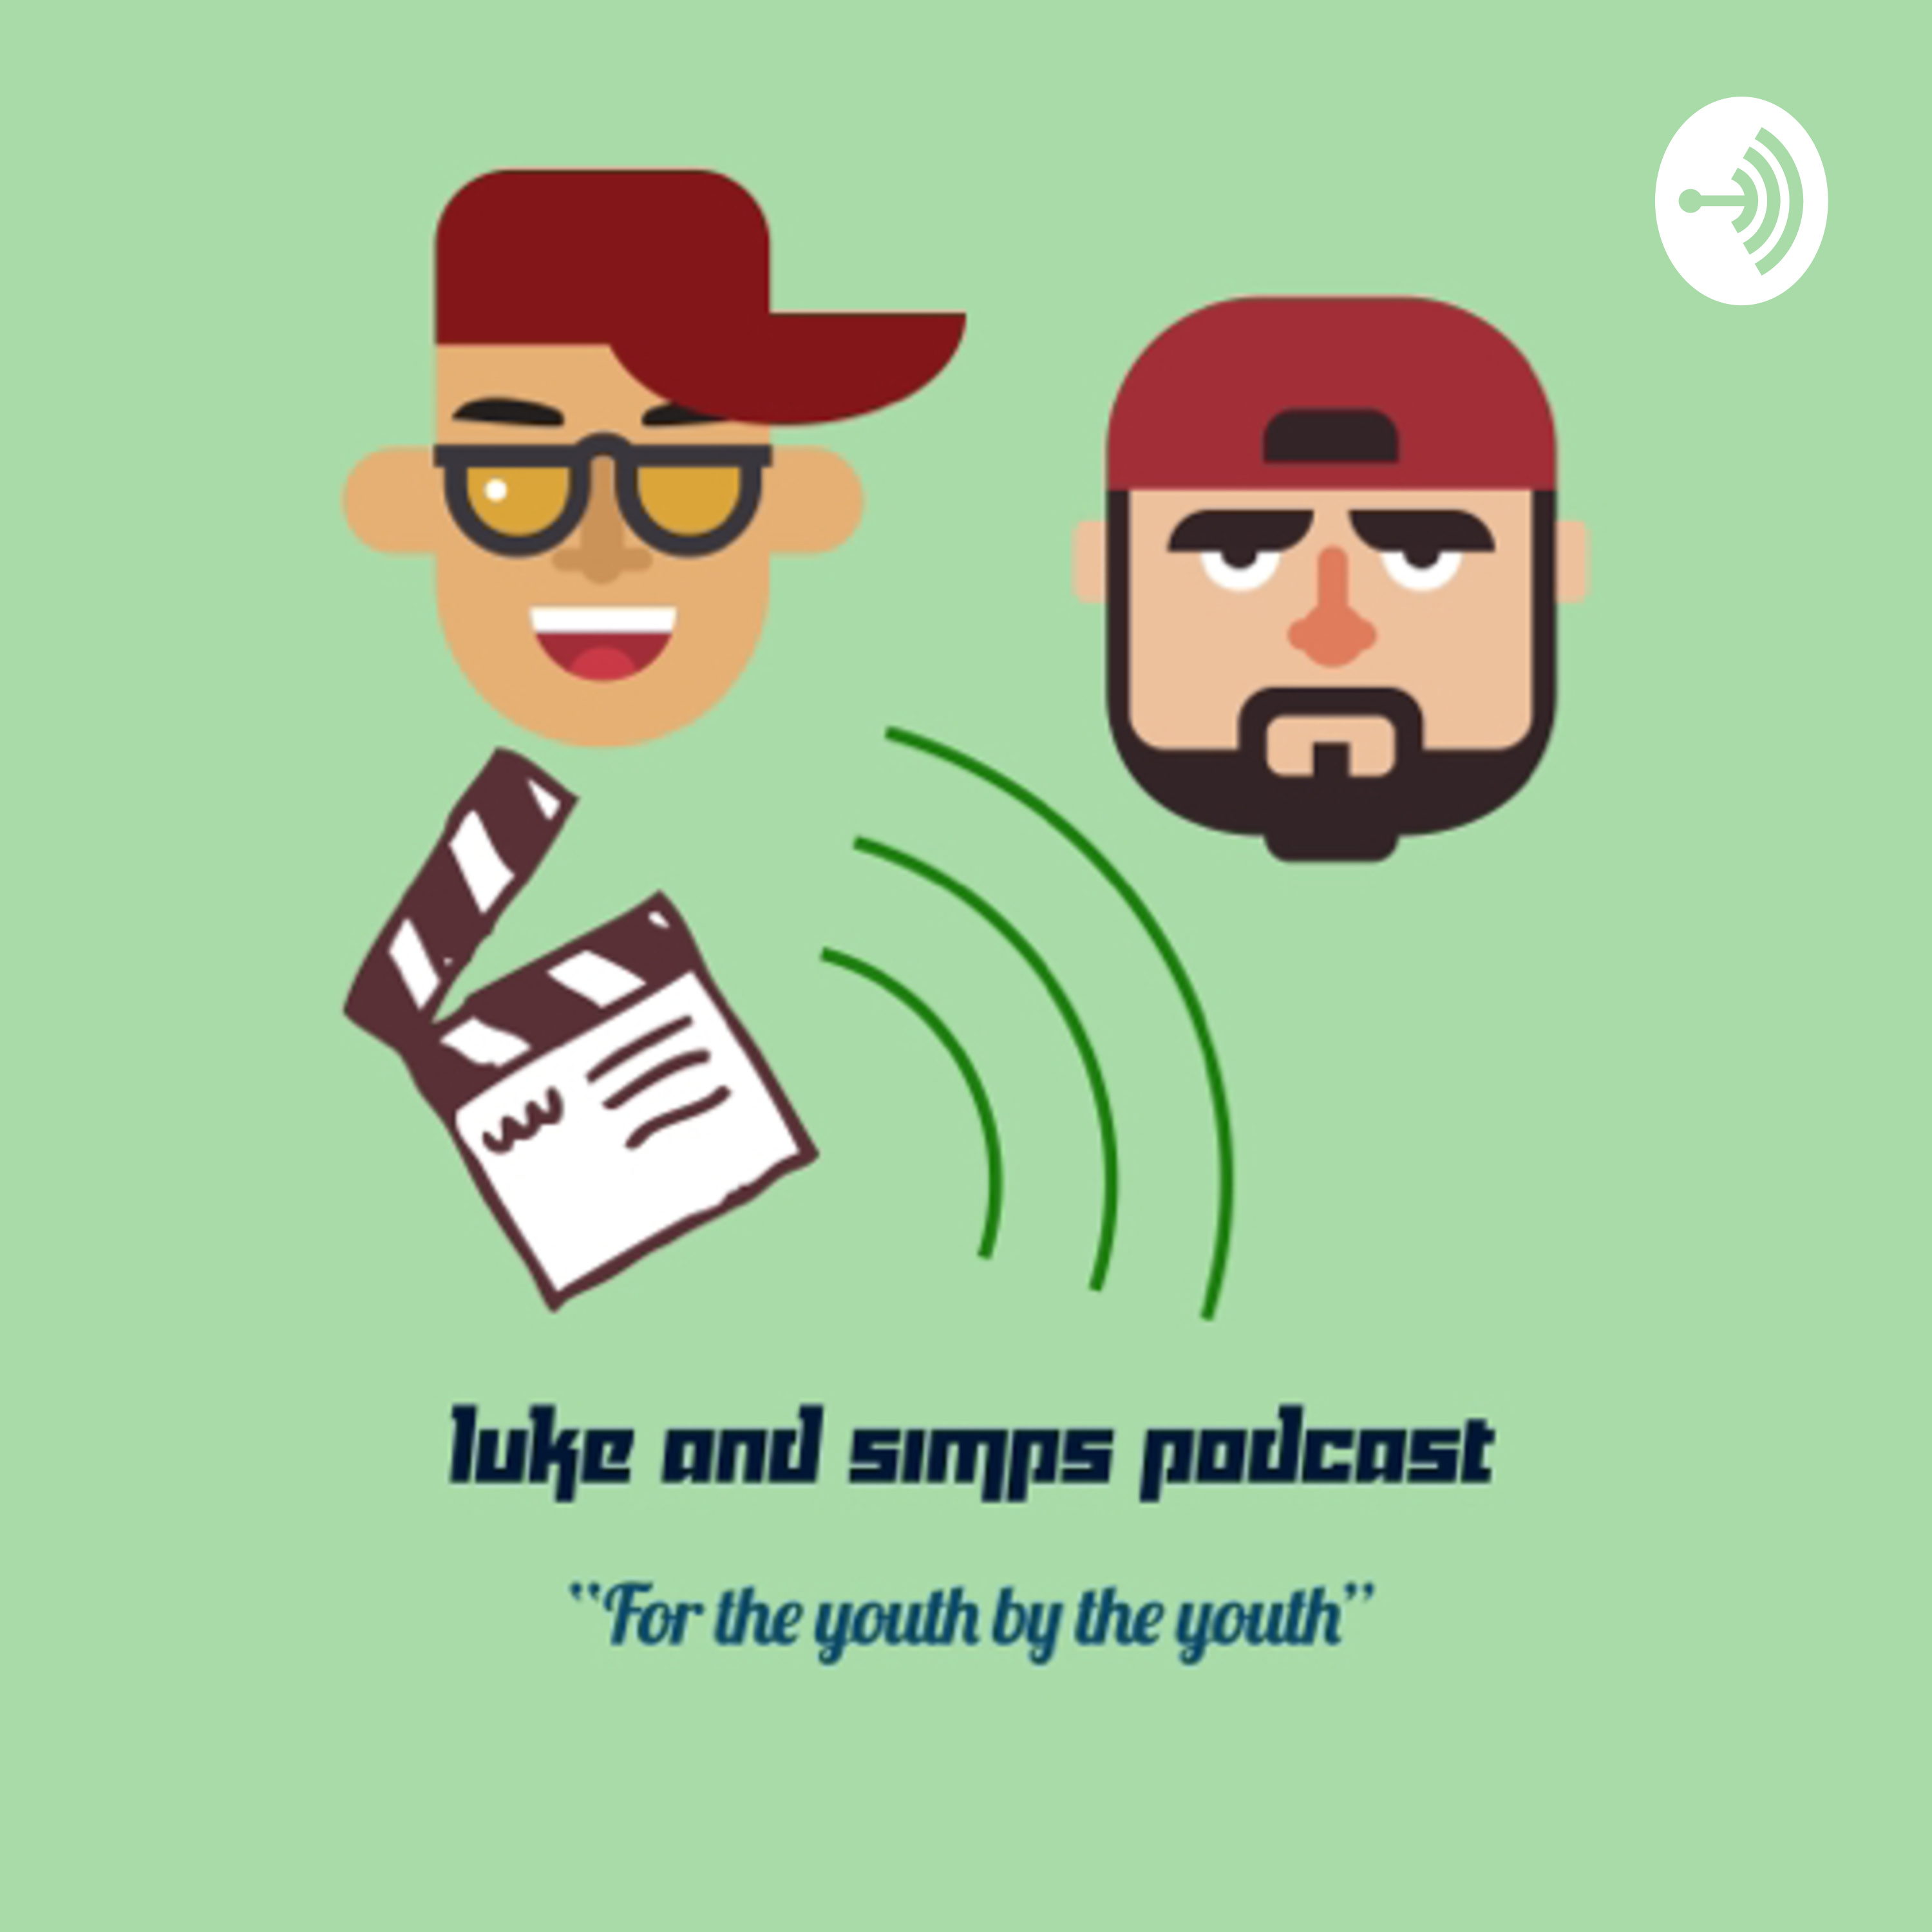 The Luke & Simps Podcast podcast